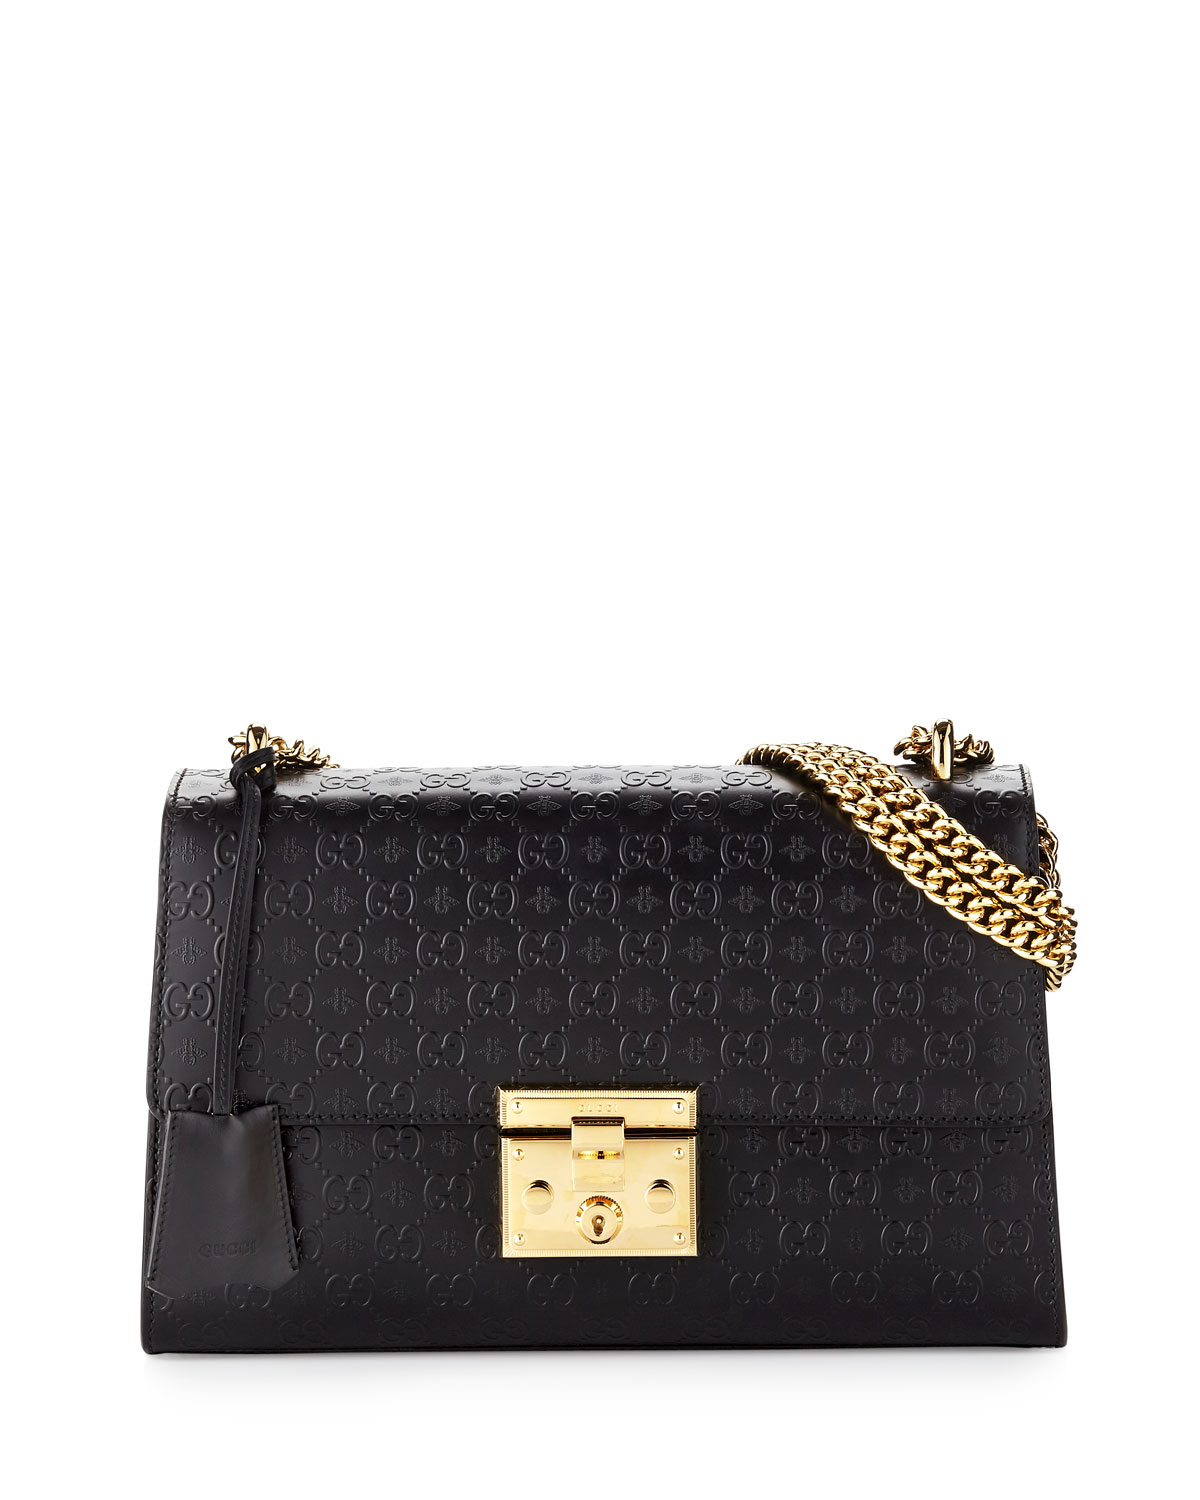 3e323b23d061 Gucci Padlock GG Medium Leather Shoulder Bag